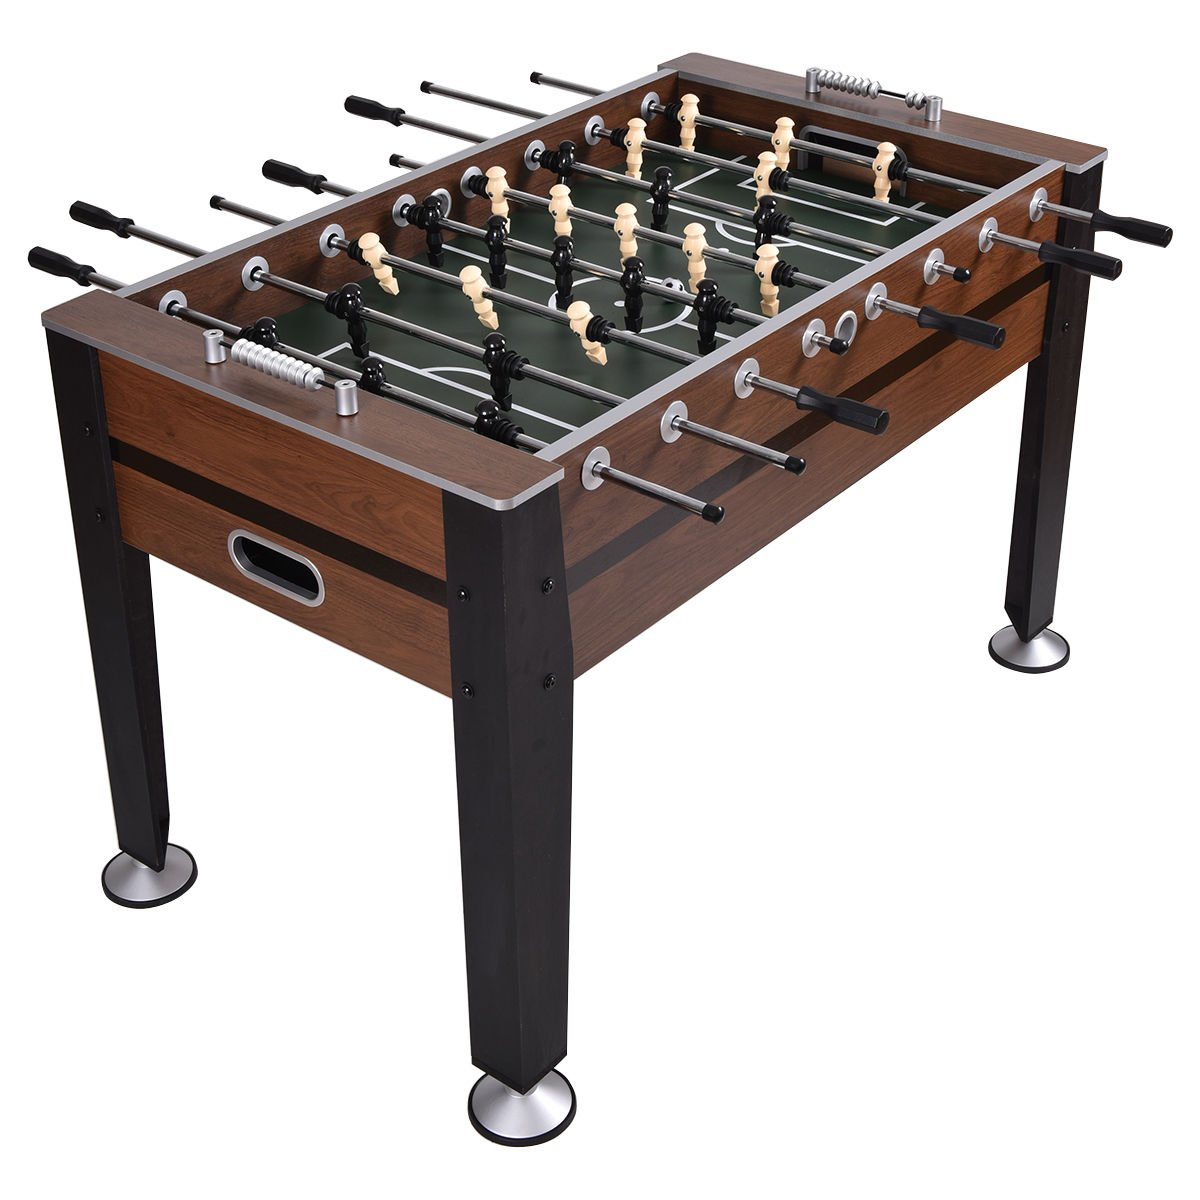 Goplus 54'' Foosball Table Soccer Game Table Competition Sized Football Arcade For Indoor Game Room Sport by Goplus